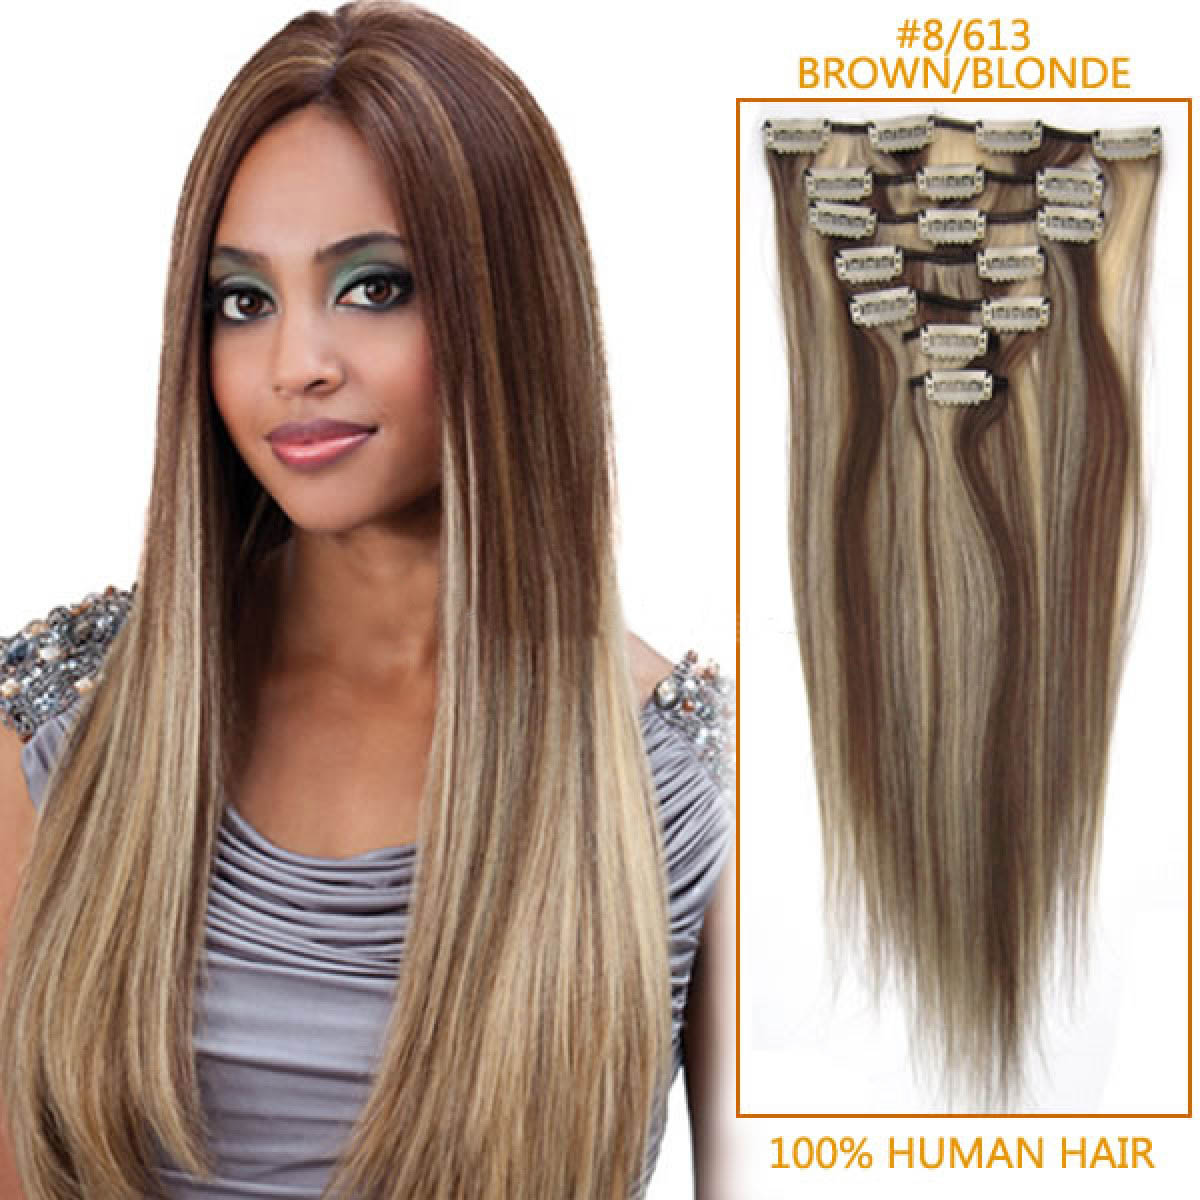 Inch 8613 brownblonde clip in remy human hair extensions 9pcs 22 inch 8613 brownblonde clip in remy human hair extensions 9pcs pmusecretfo Gallery